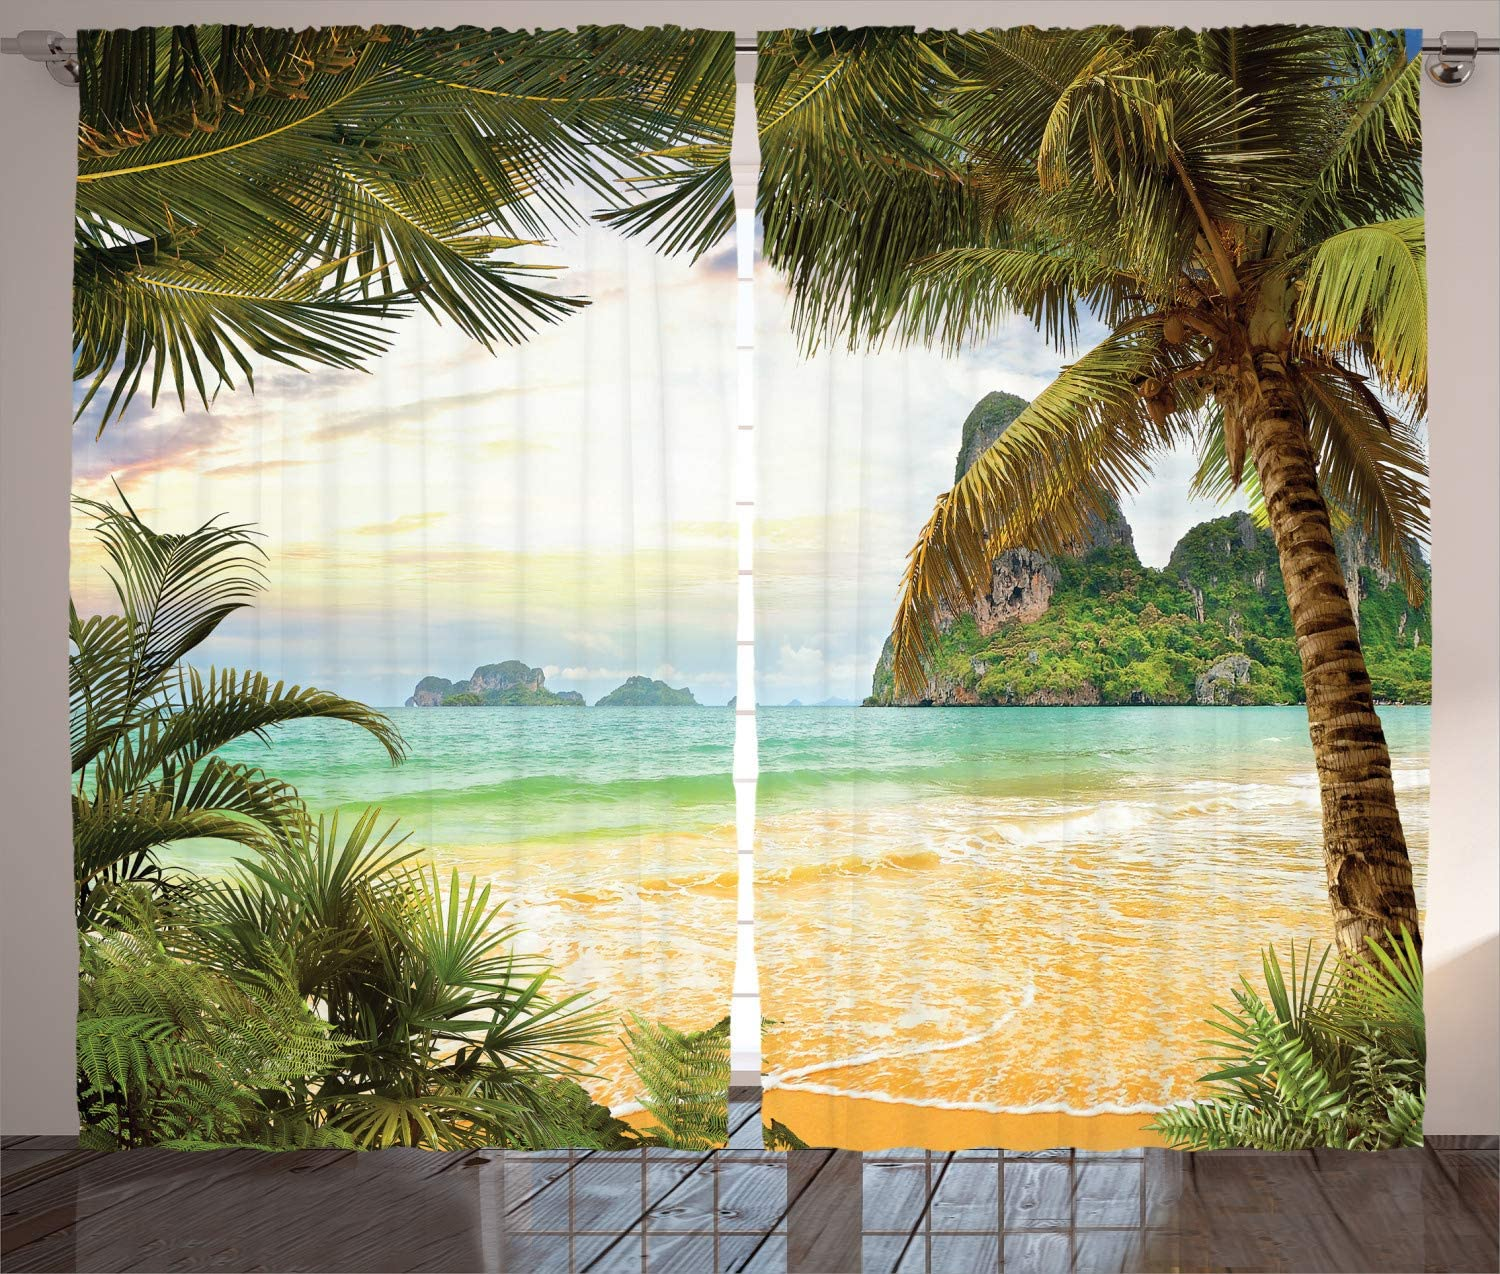 Ambesonne Ocean Curtains Palm 超美品再入荷品質至上 ☆新作入荷☆新品 Coconut and Mou Trees Waves